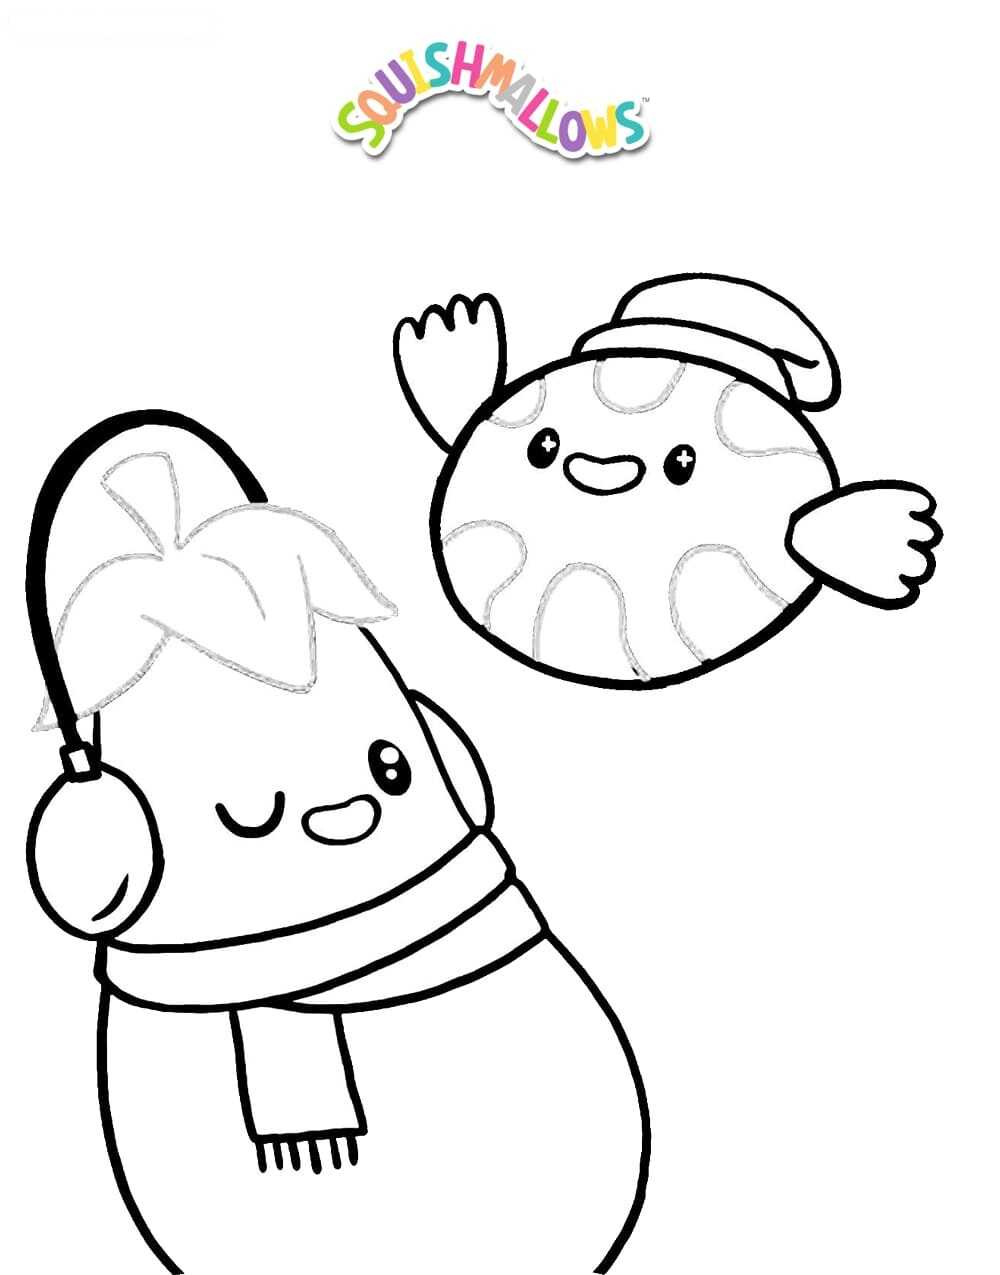 Eggplant and Chuck the Chick from Squishmallow Coloring Pages